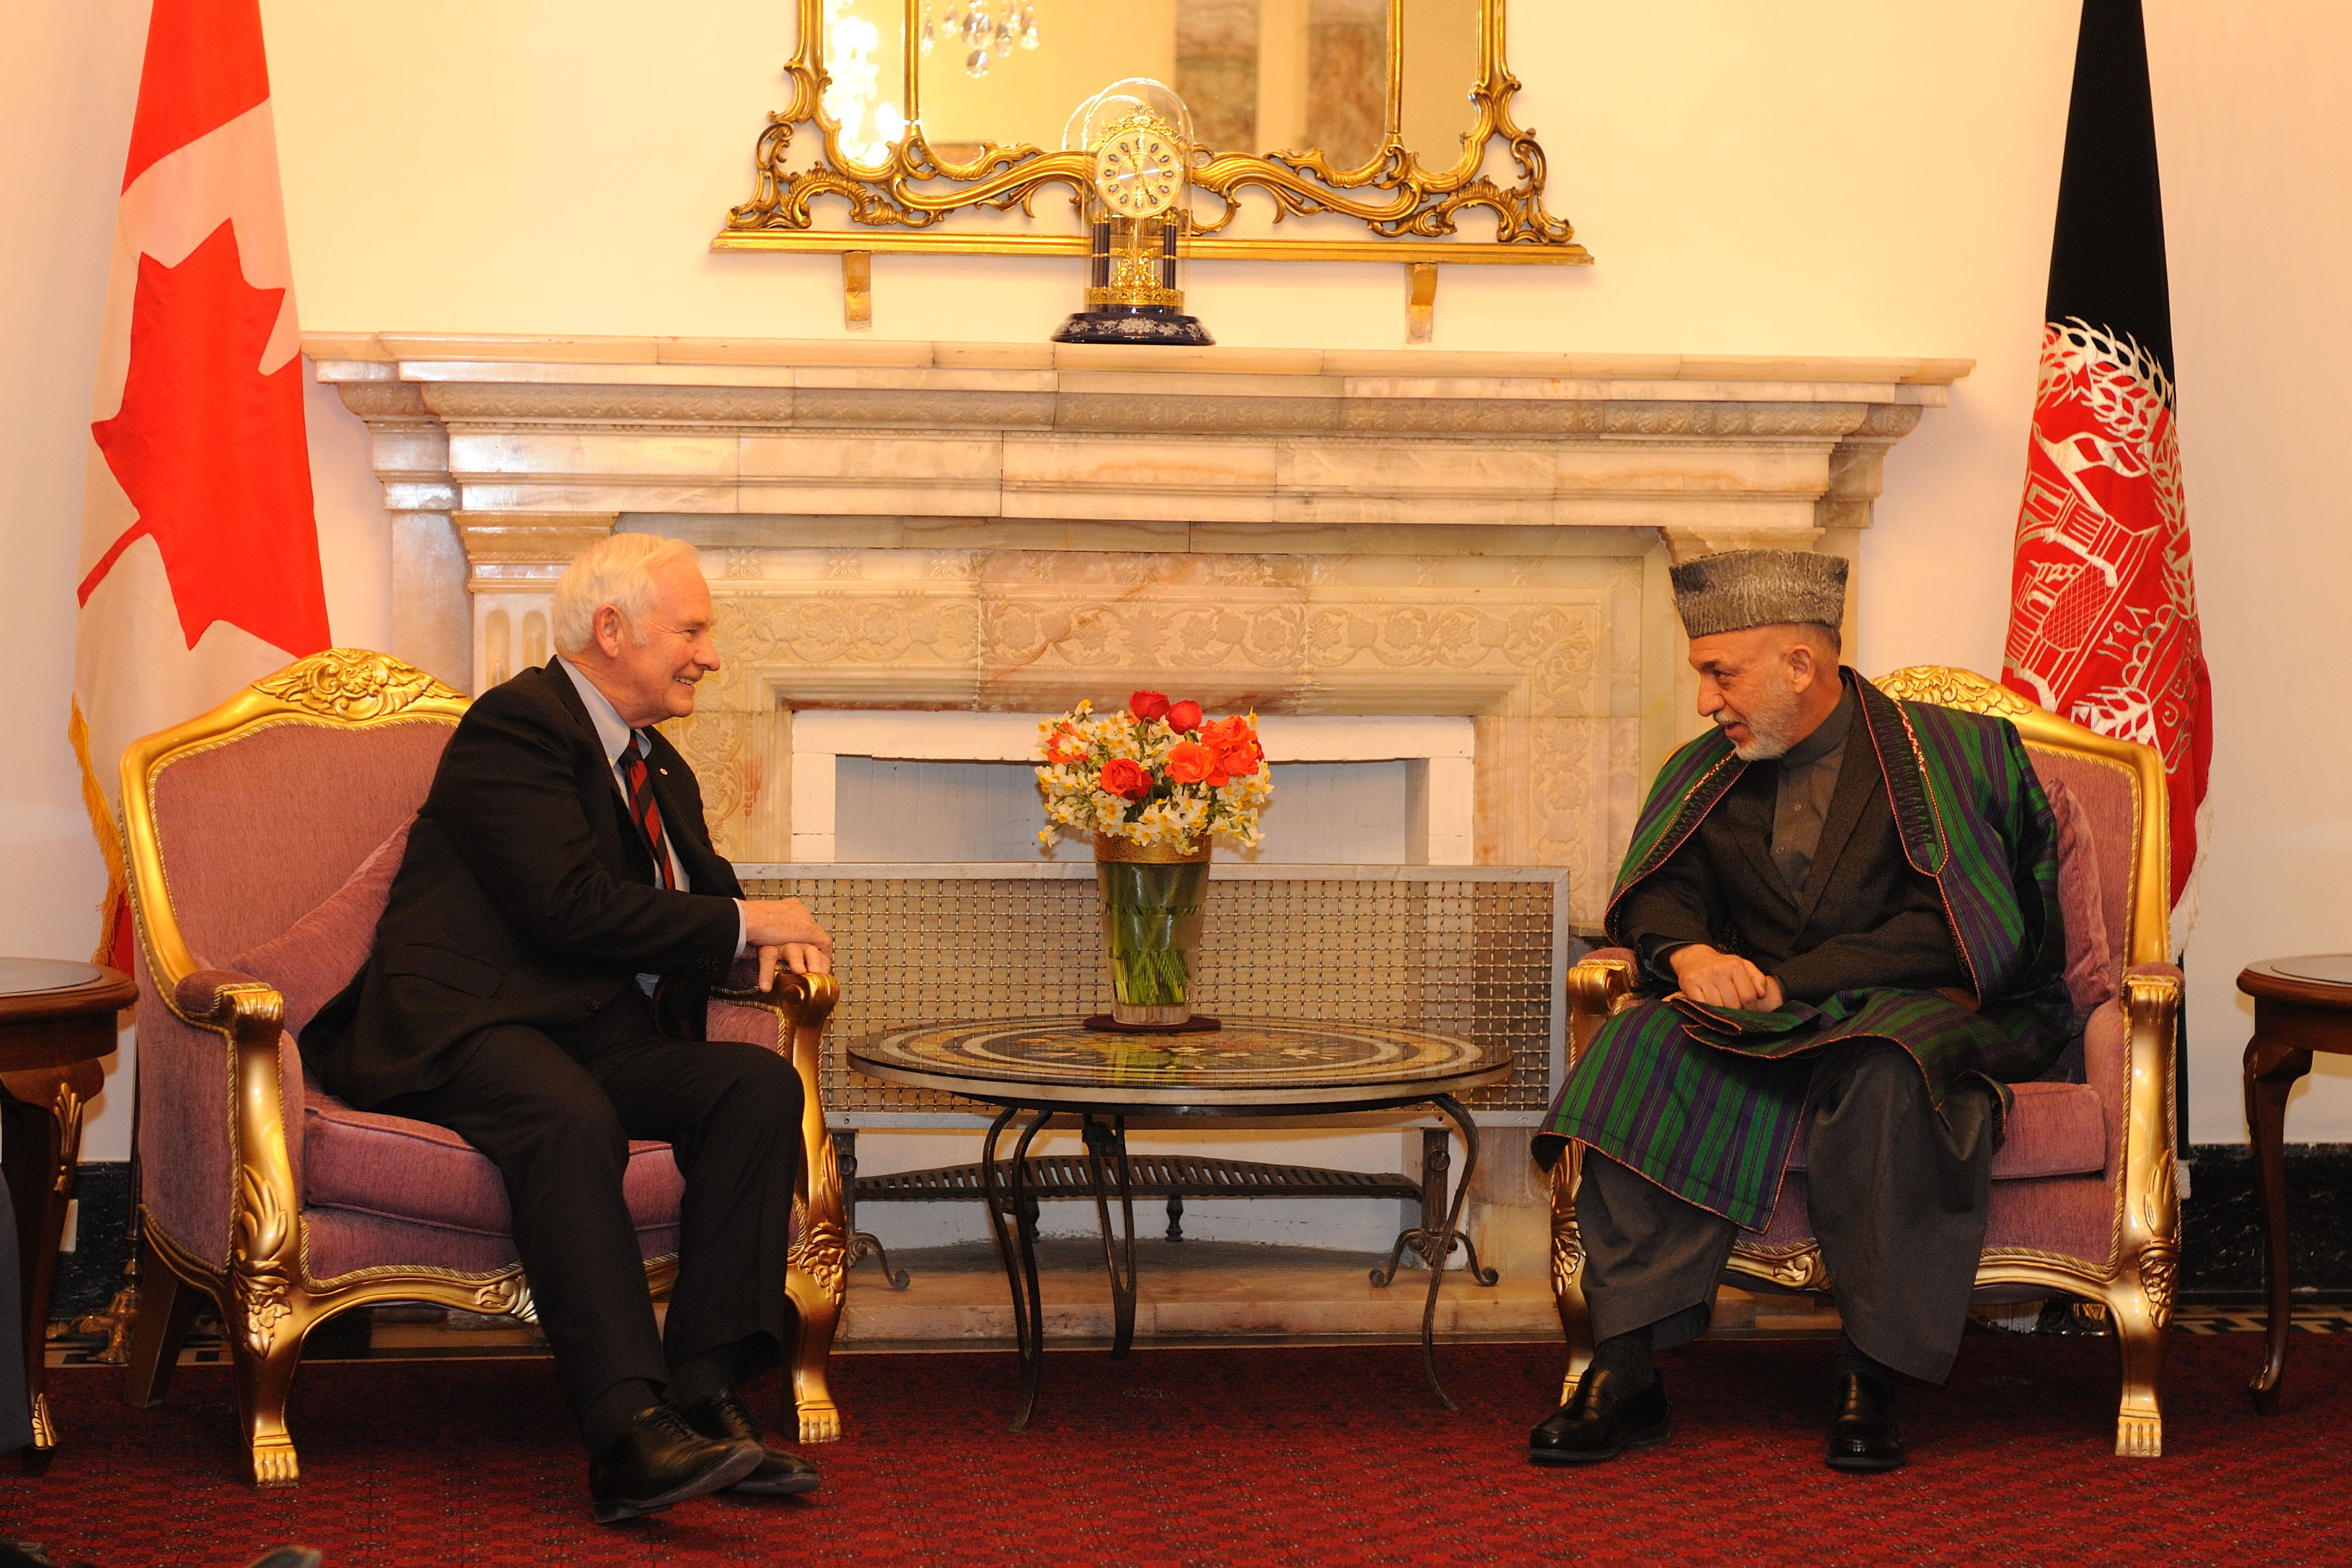 During his meeting with the president of Afghanistan, the Governor General discussed Canada's new engagement strategy in Afghanistan and to recognize Canada's significant investments, but as well as its losses in the country to date.